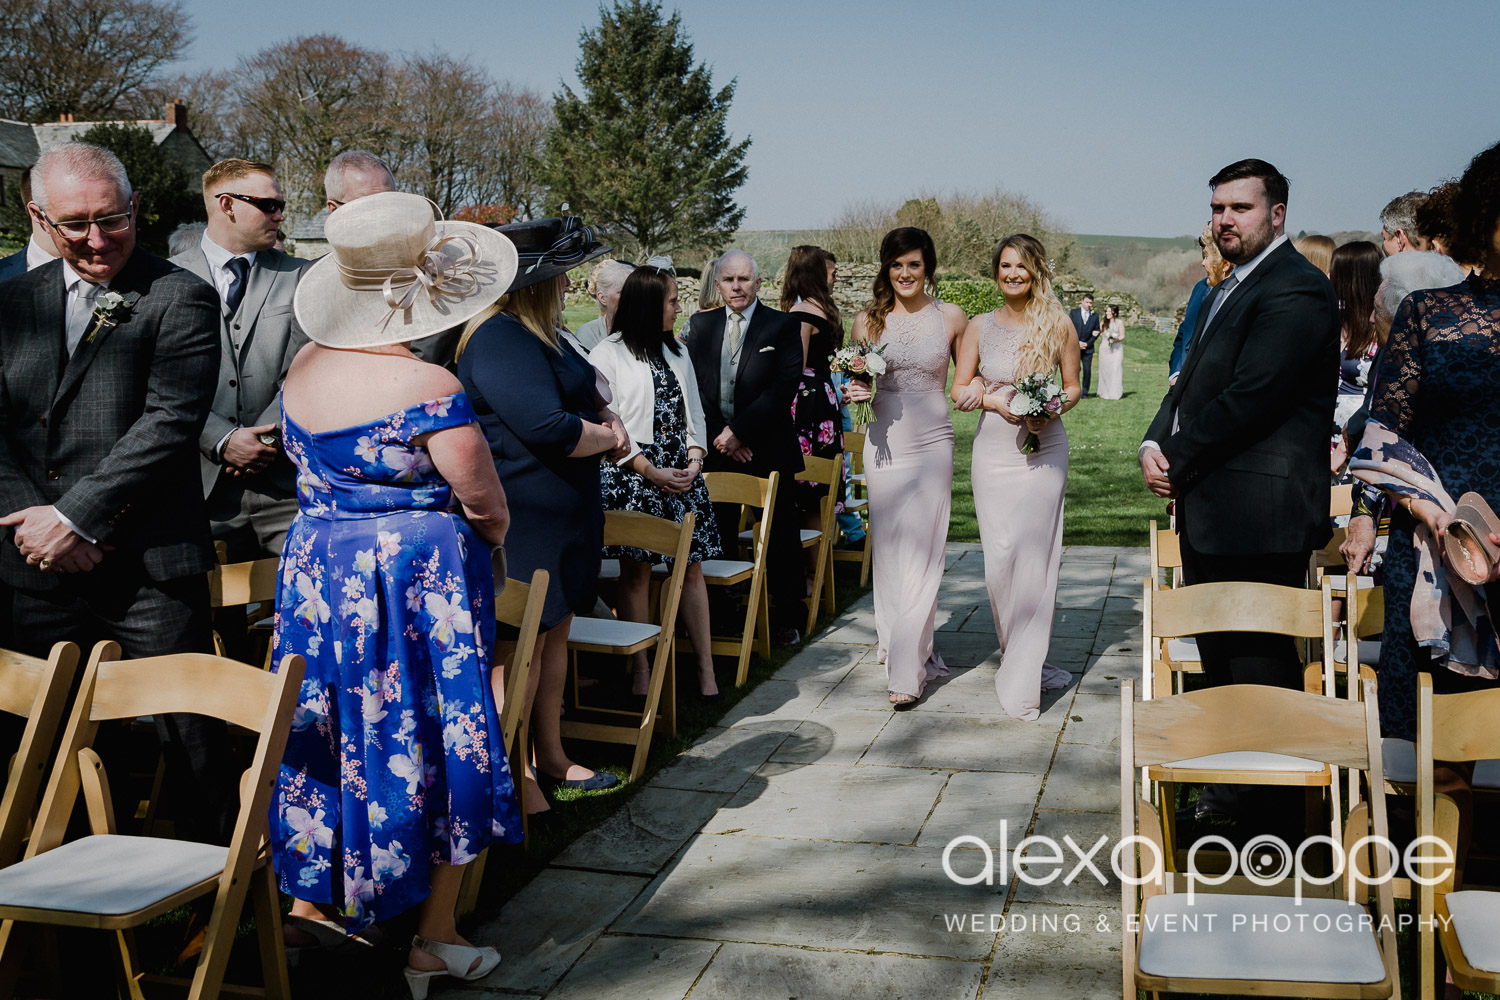 BJ_wedding_trevenna-16.jpg